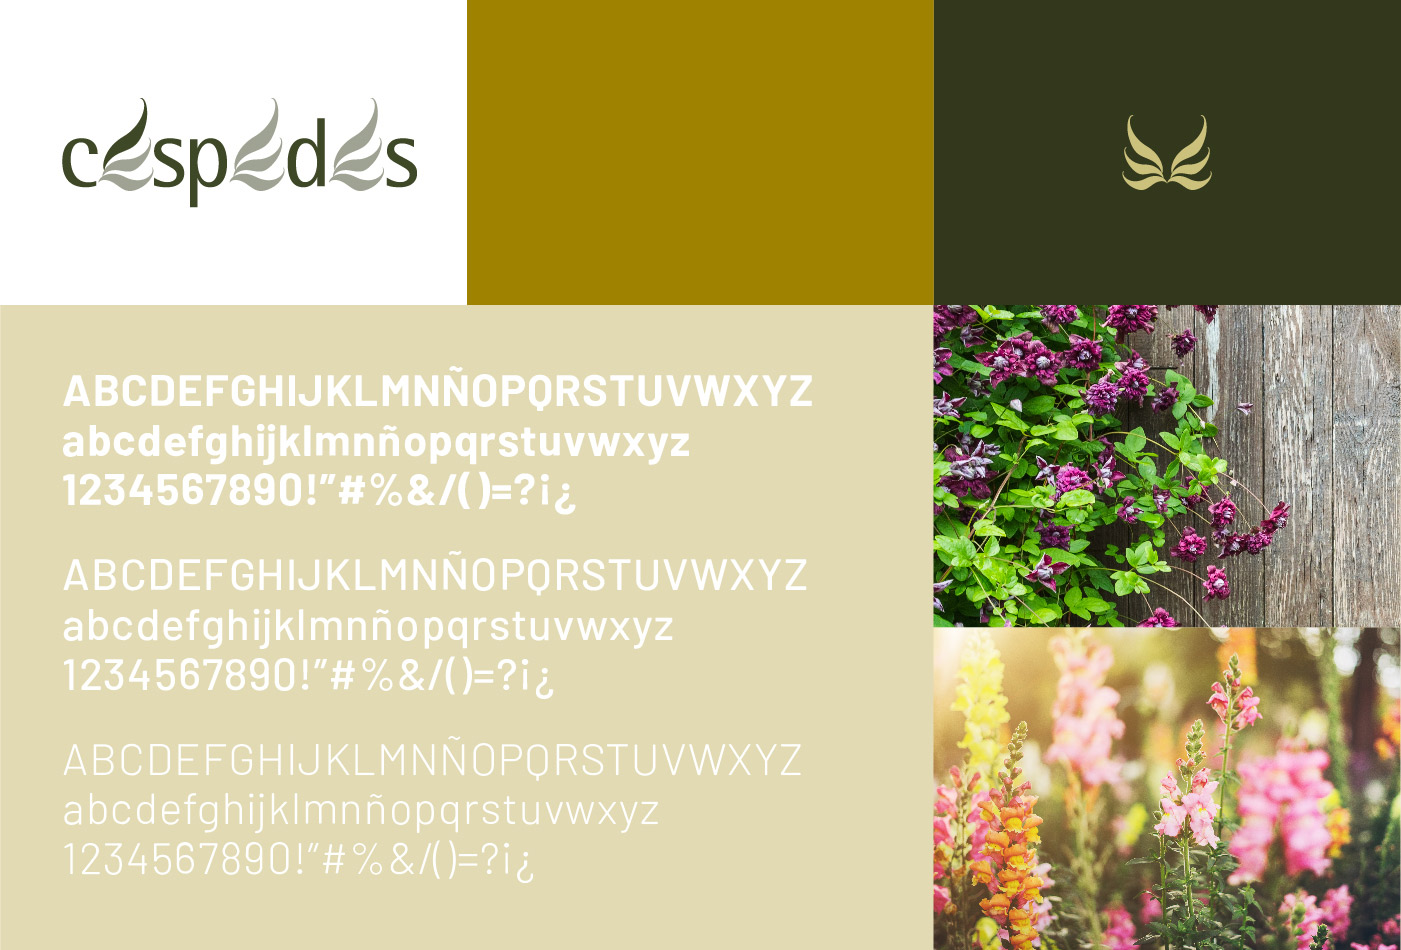 graphic design web cespedes